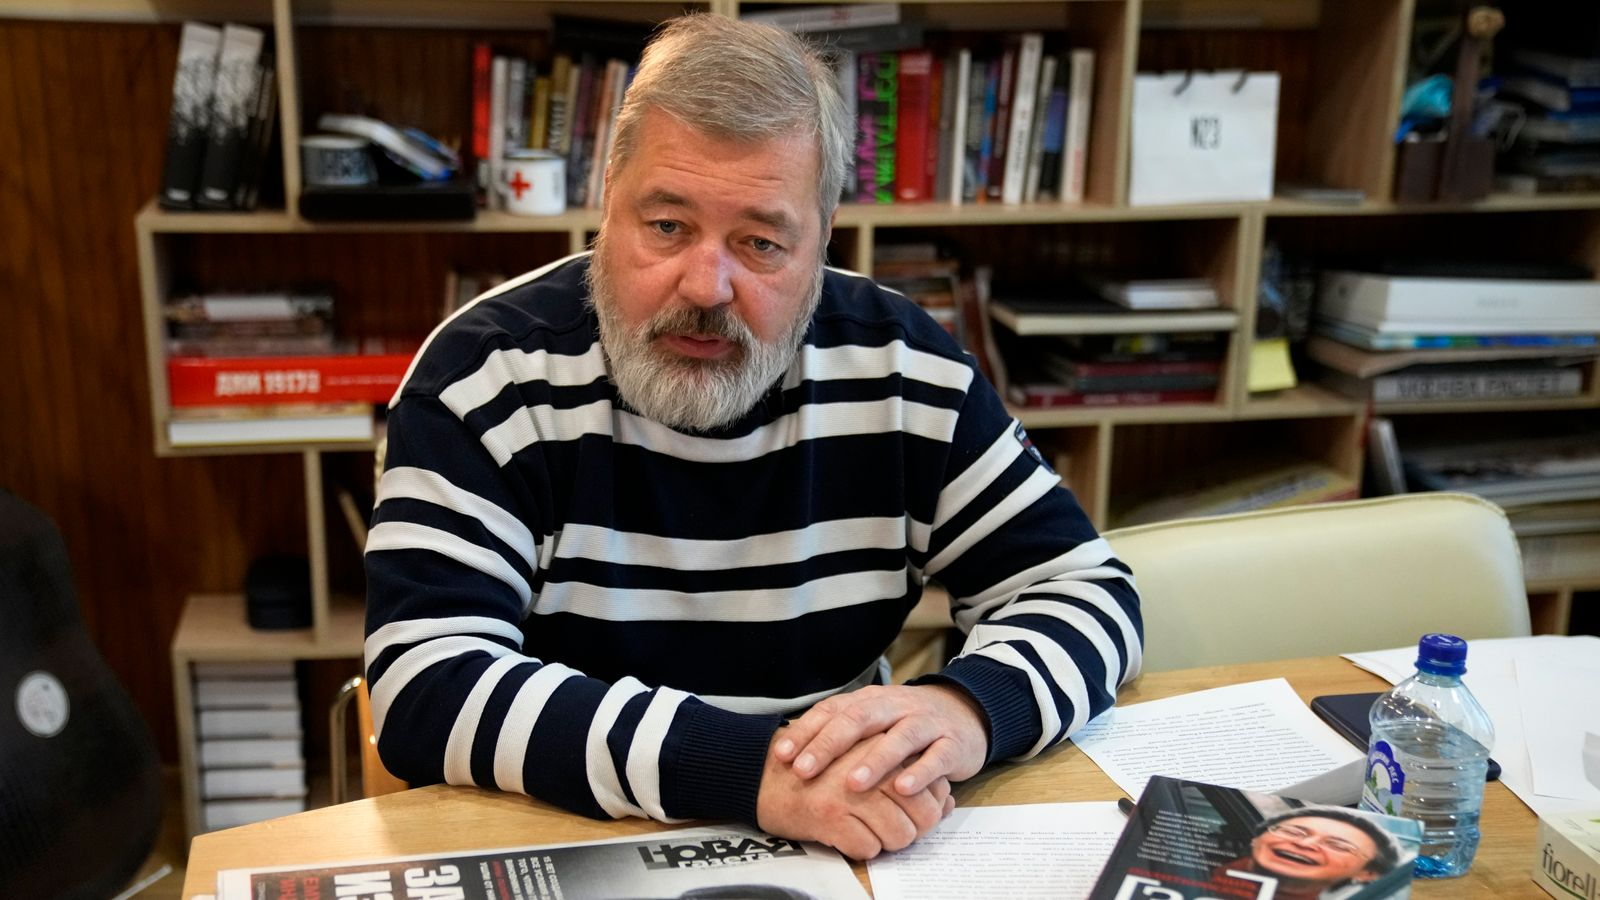 Novaya Gazeta editor Dmitry Muratov speaks during an interview with The Associated Press at the Novaya Gazeta newspaper, in Moscow, Russia, Thursday, Oct. 7, 2021. Colleagues of investigative reporter Anna Politkovskaya are sharply criticizing the Russian authorities for failing to track down the mastermind of her killing 15 years ago.PIC:AP